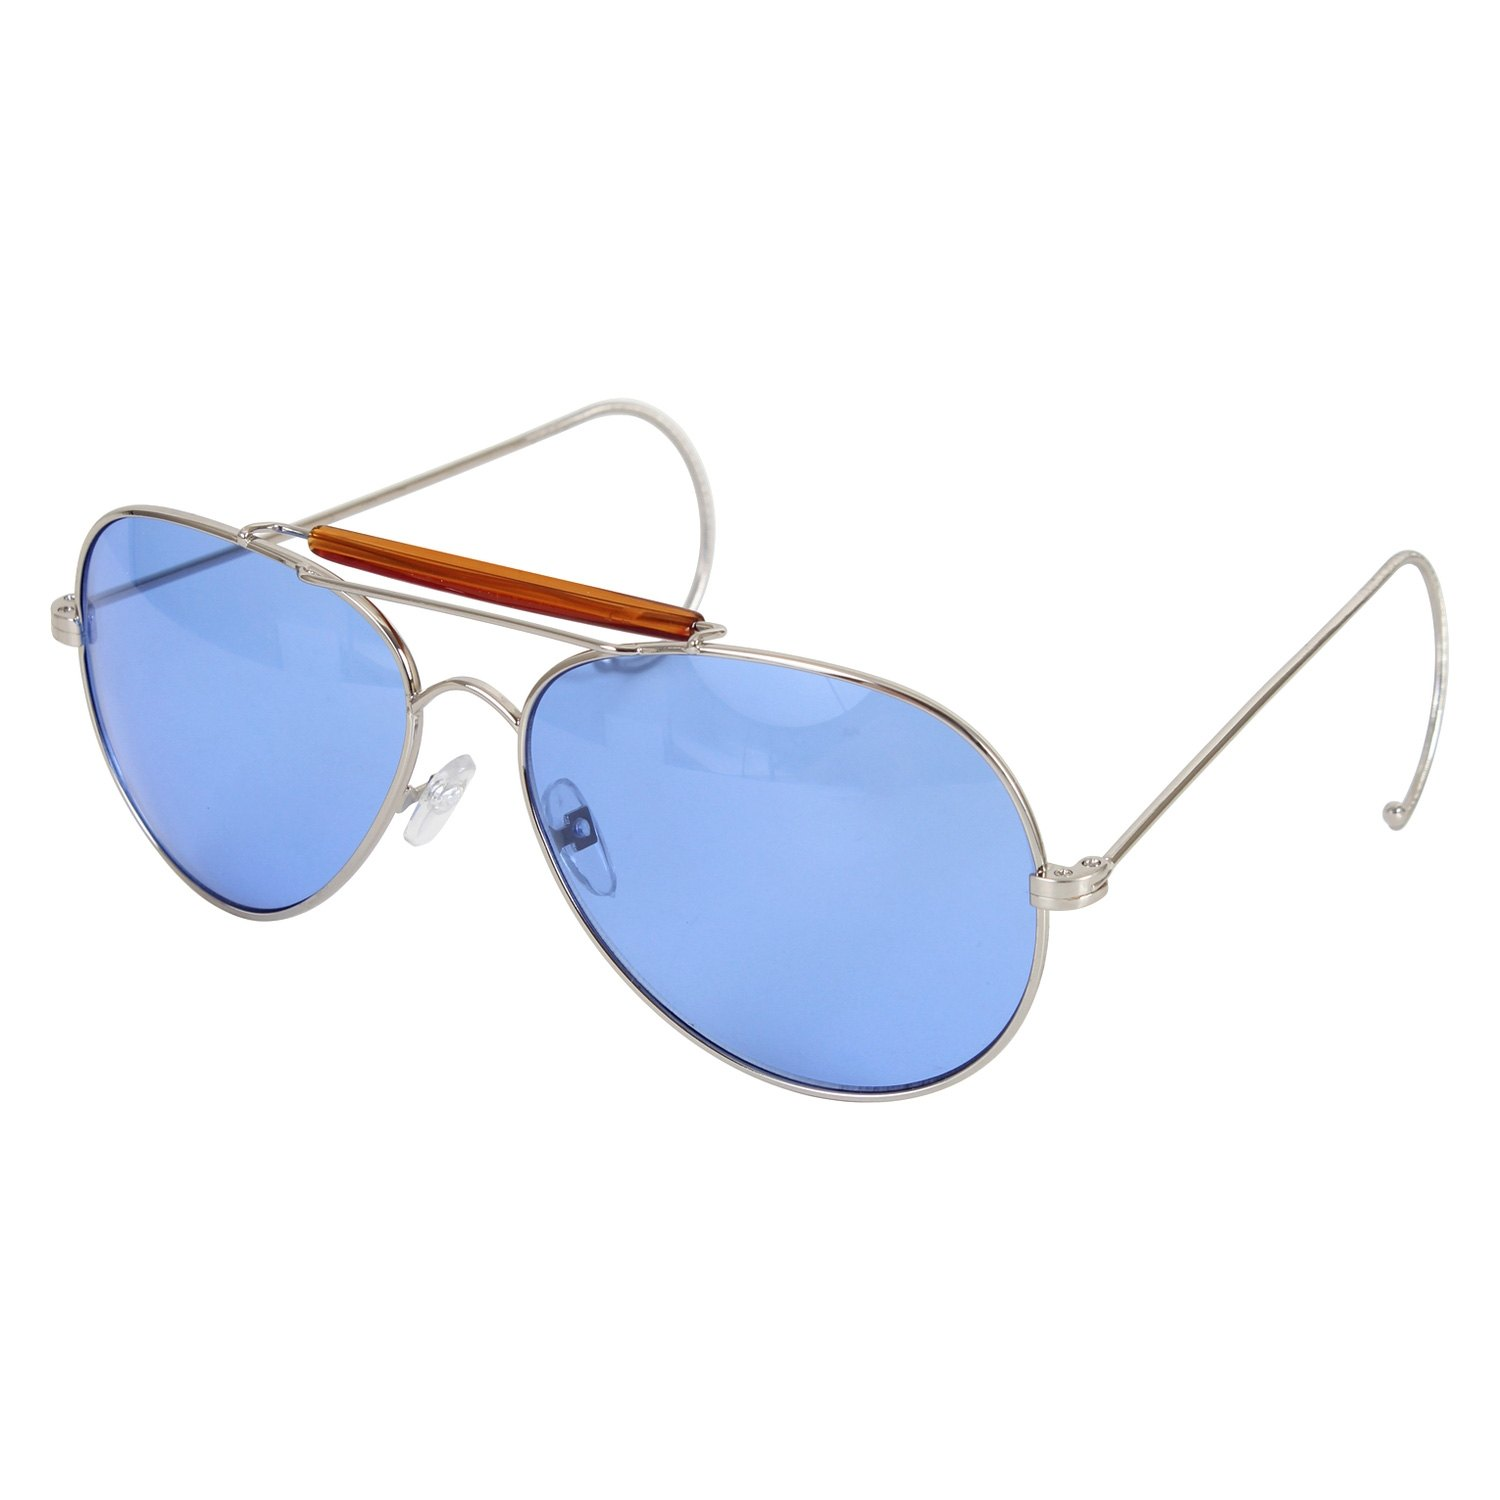 d8ce26903d7 Rothco® 10299-Blue-Polybagged-Only - Aviator Air Force Style ...